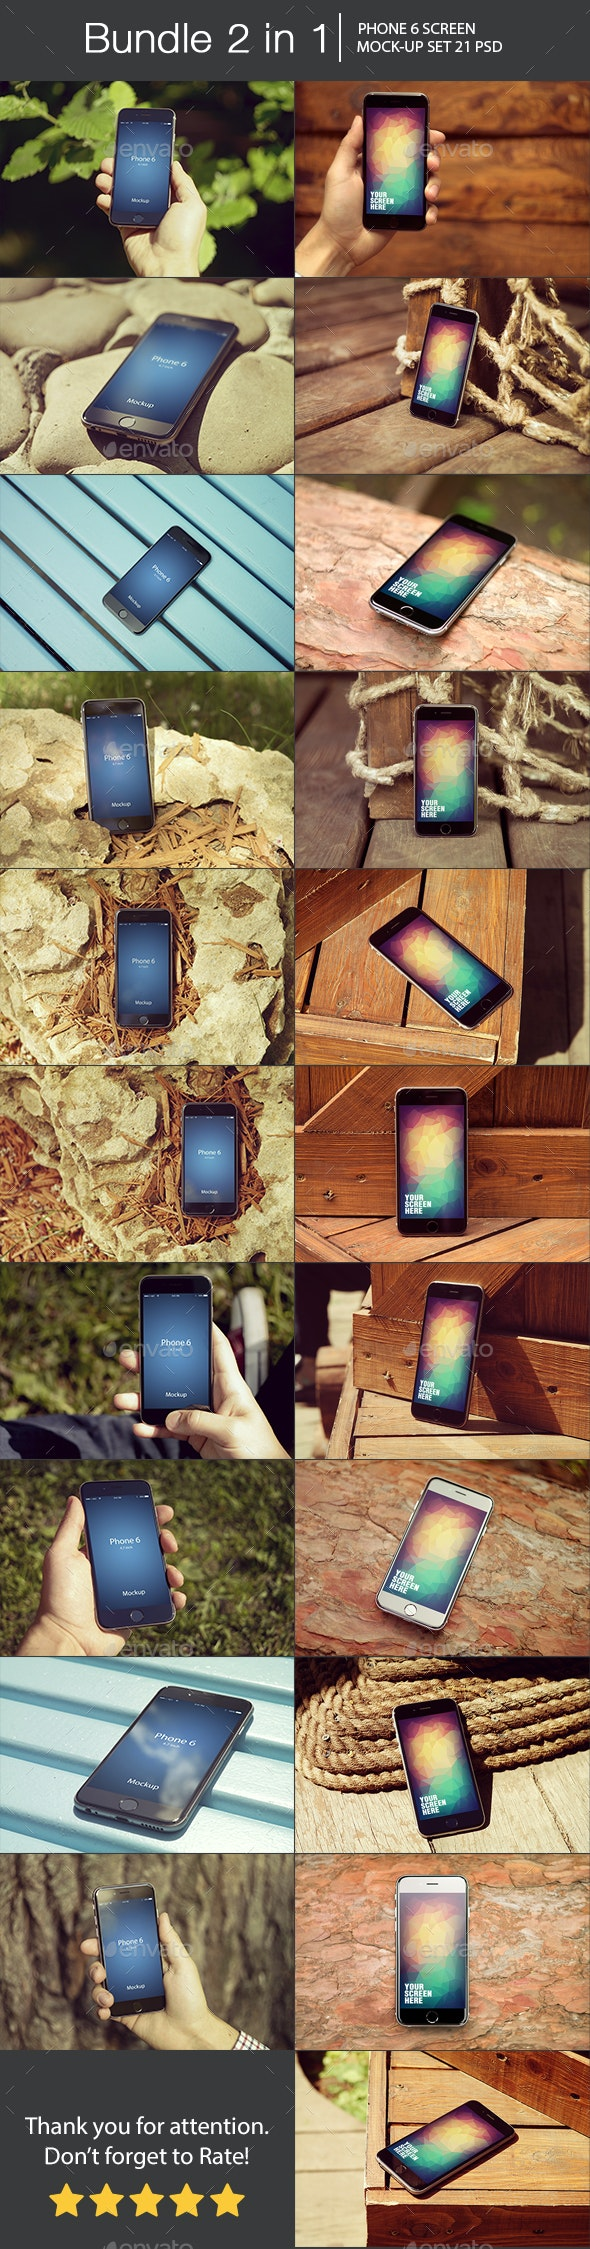 iPhone 6 Mockup Bundle 2 in 1 - Mobile Displays